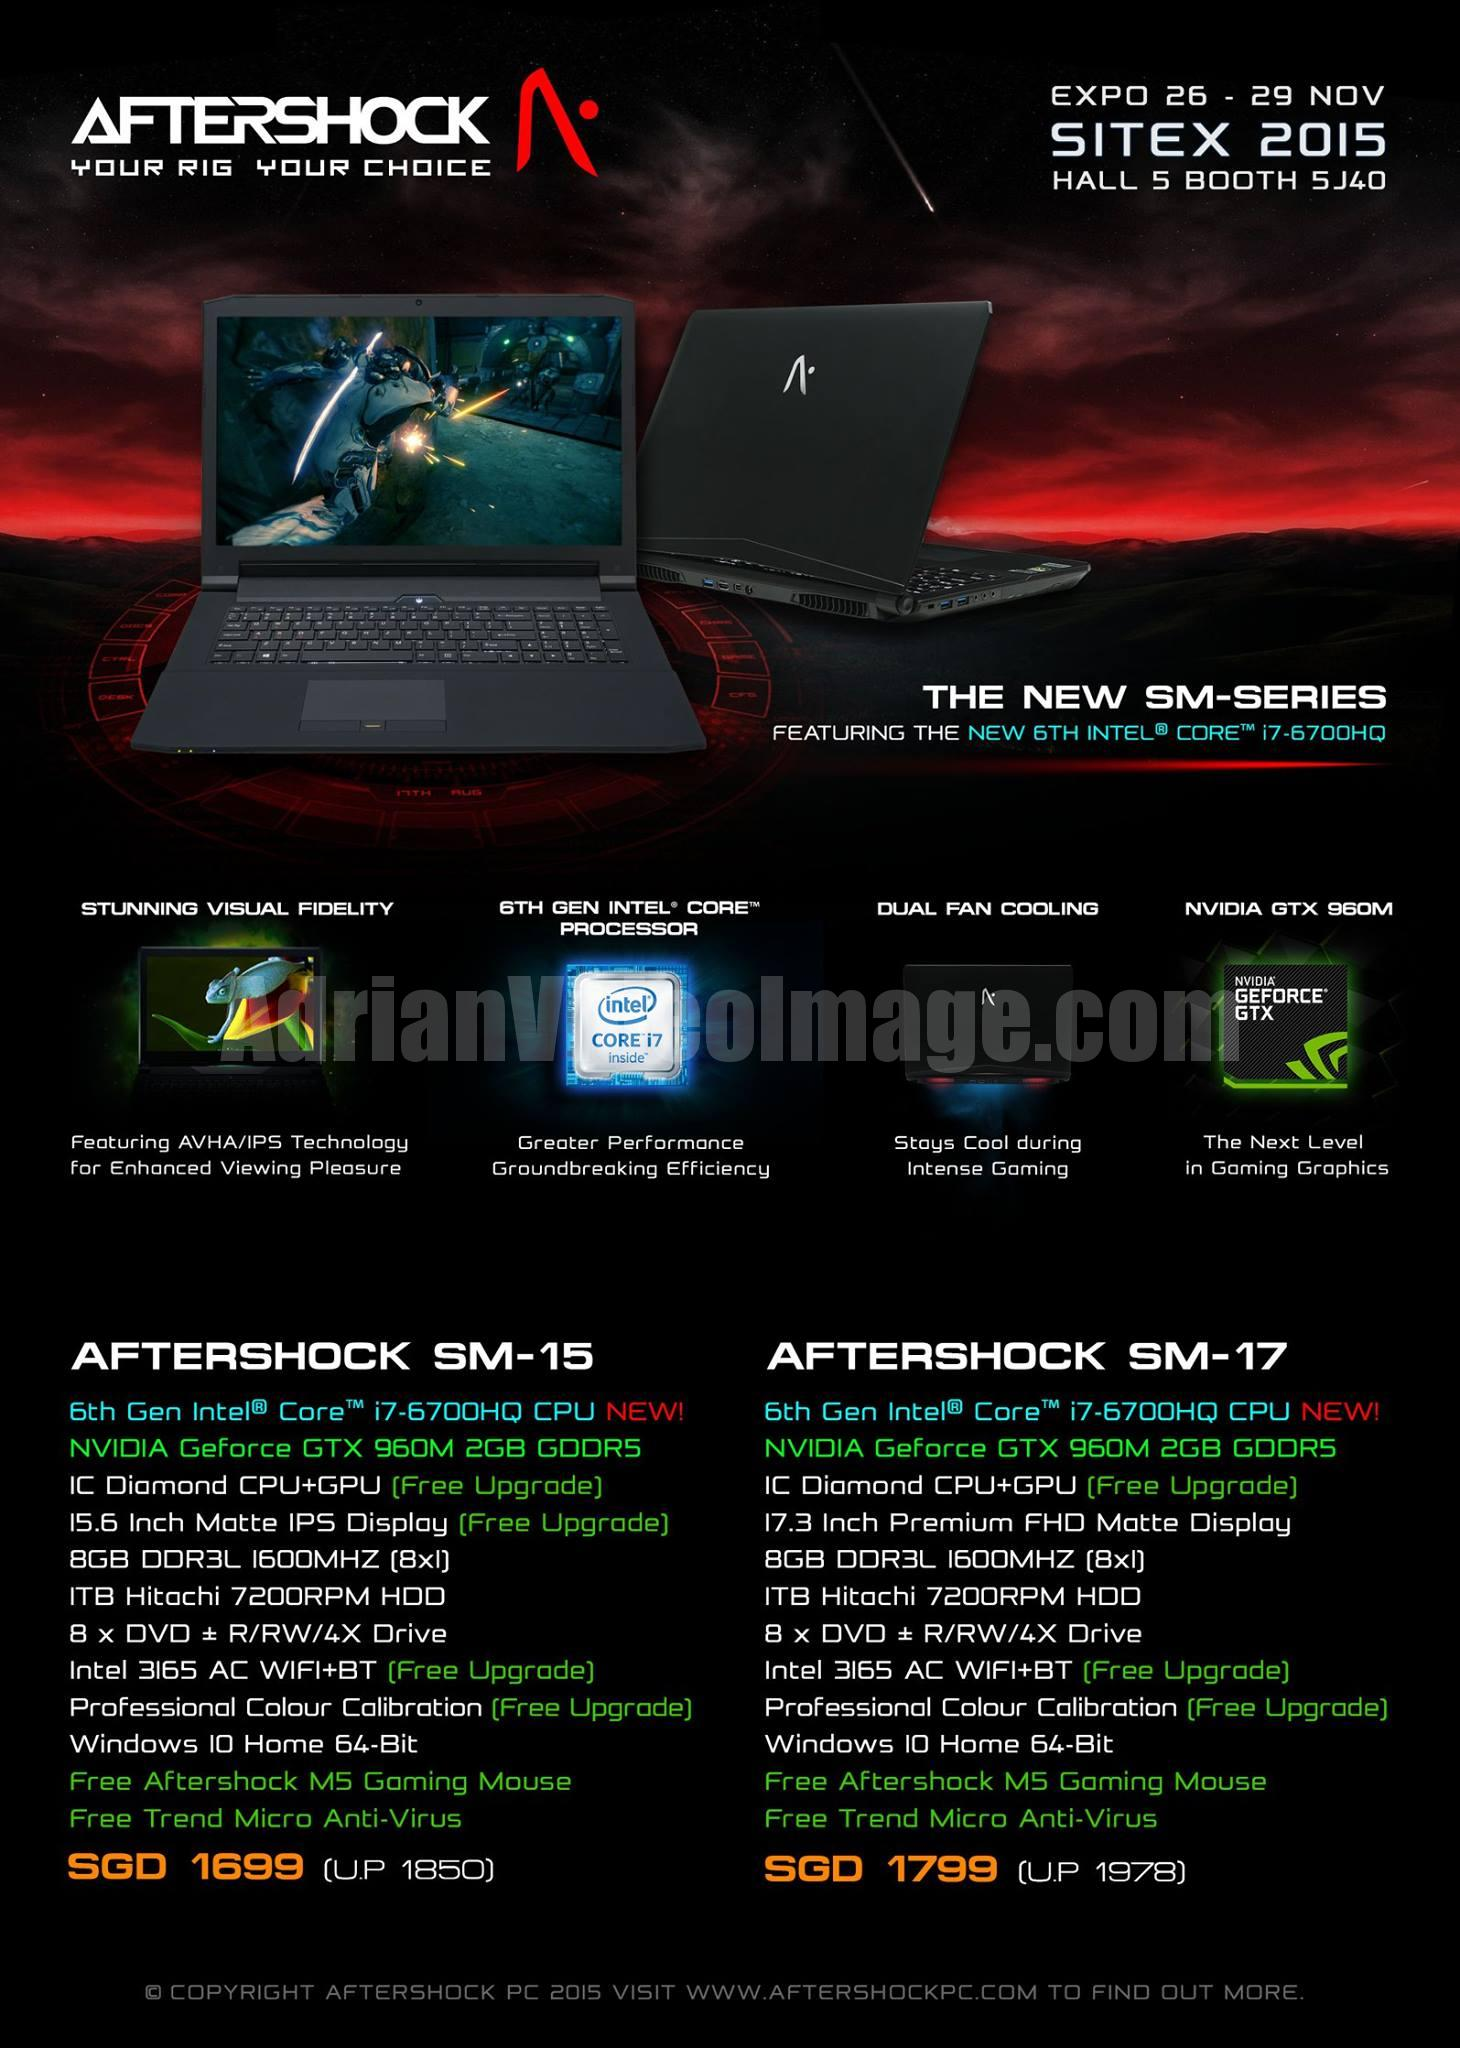 AfterShock PC Promotion 2015 - pg1 - New SM-Series